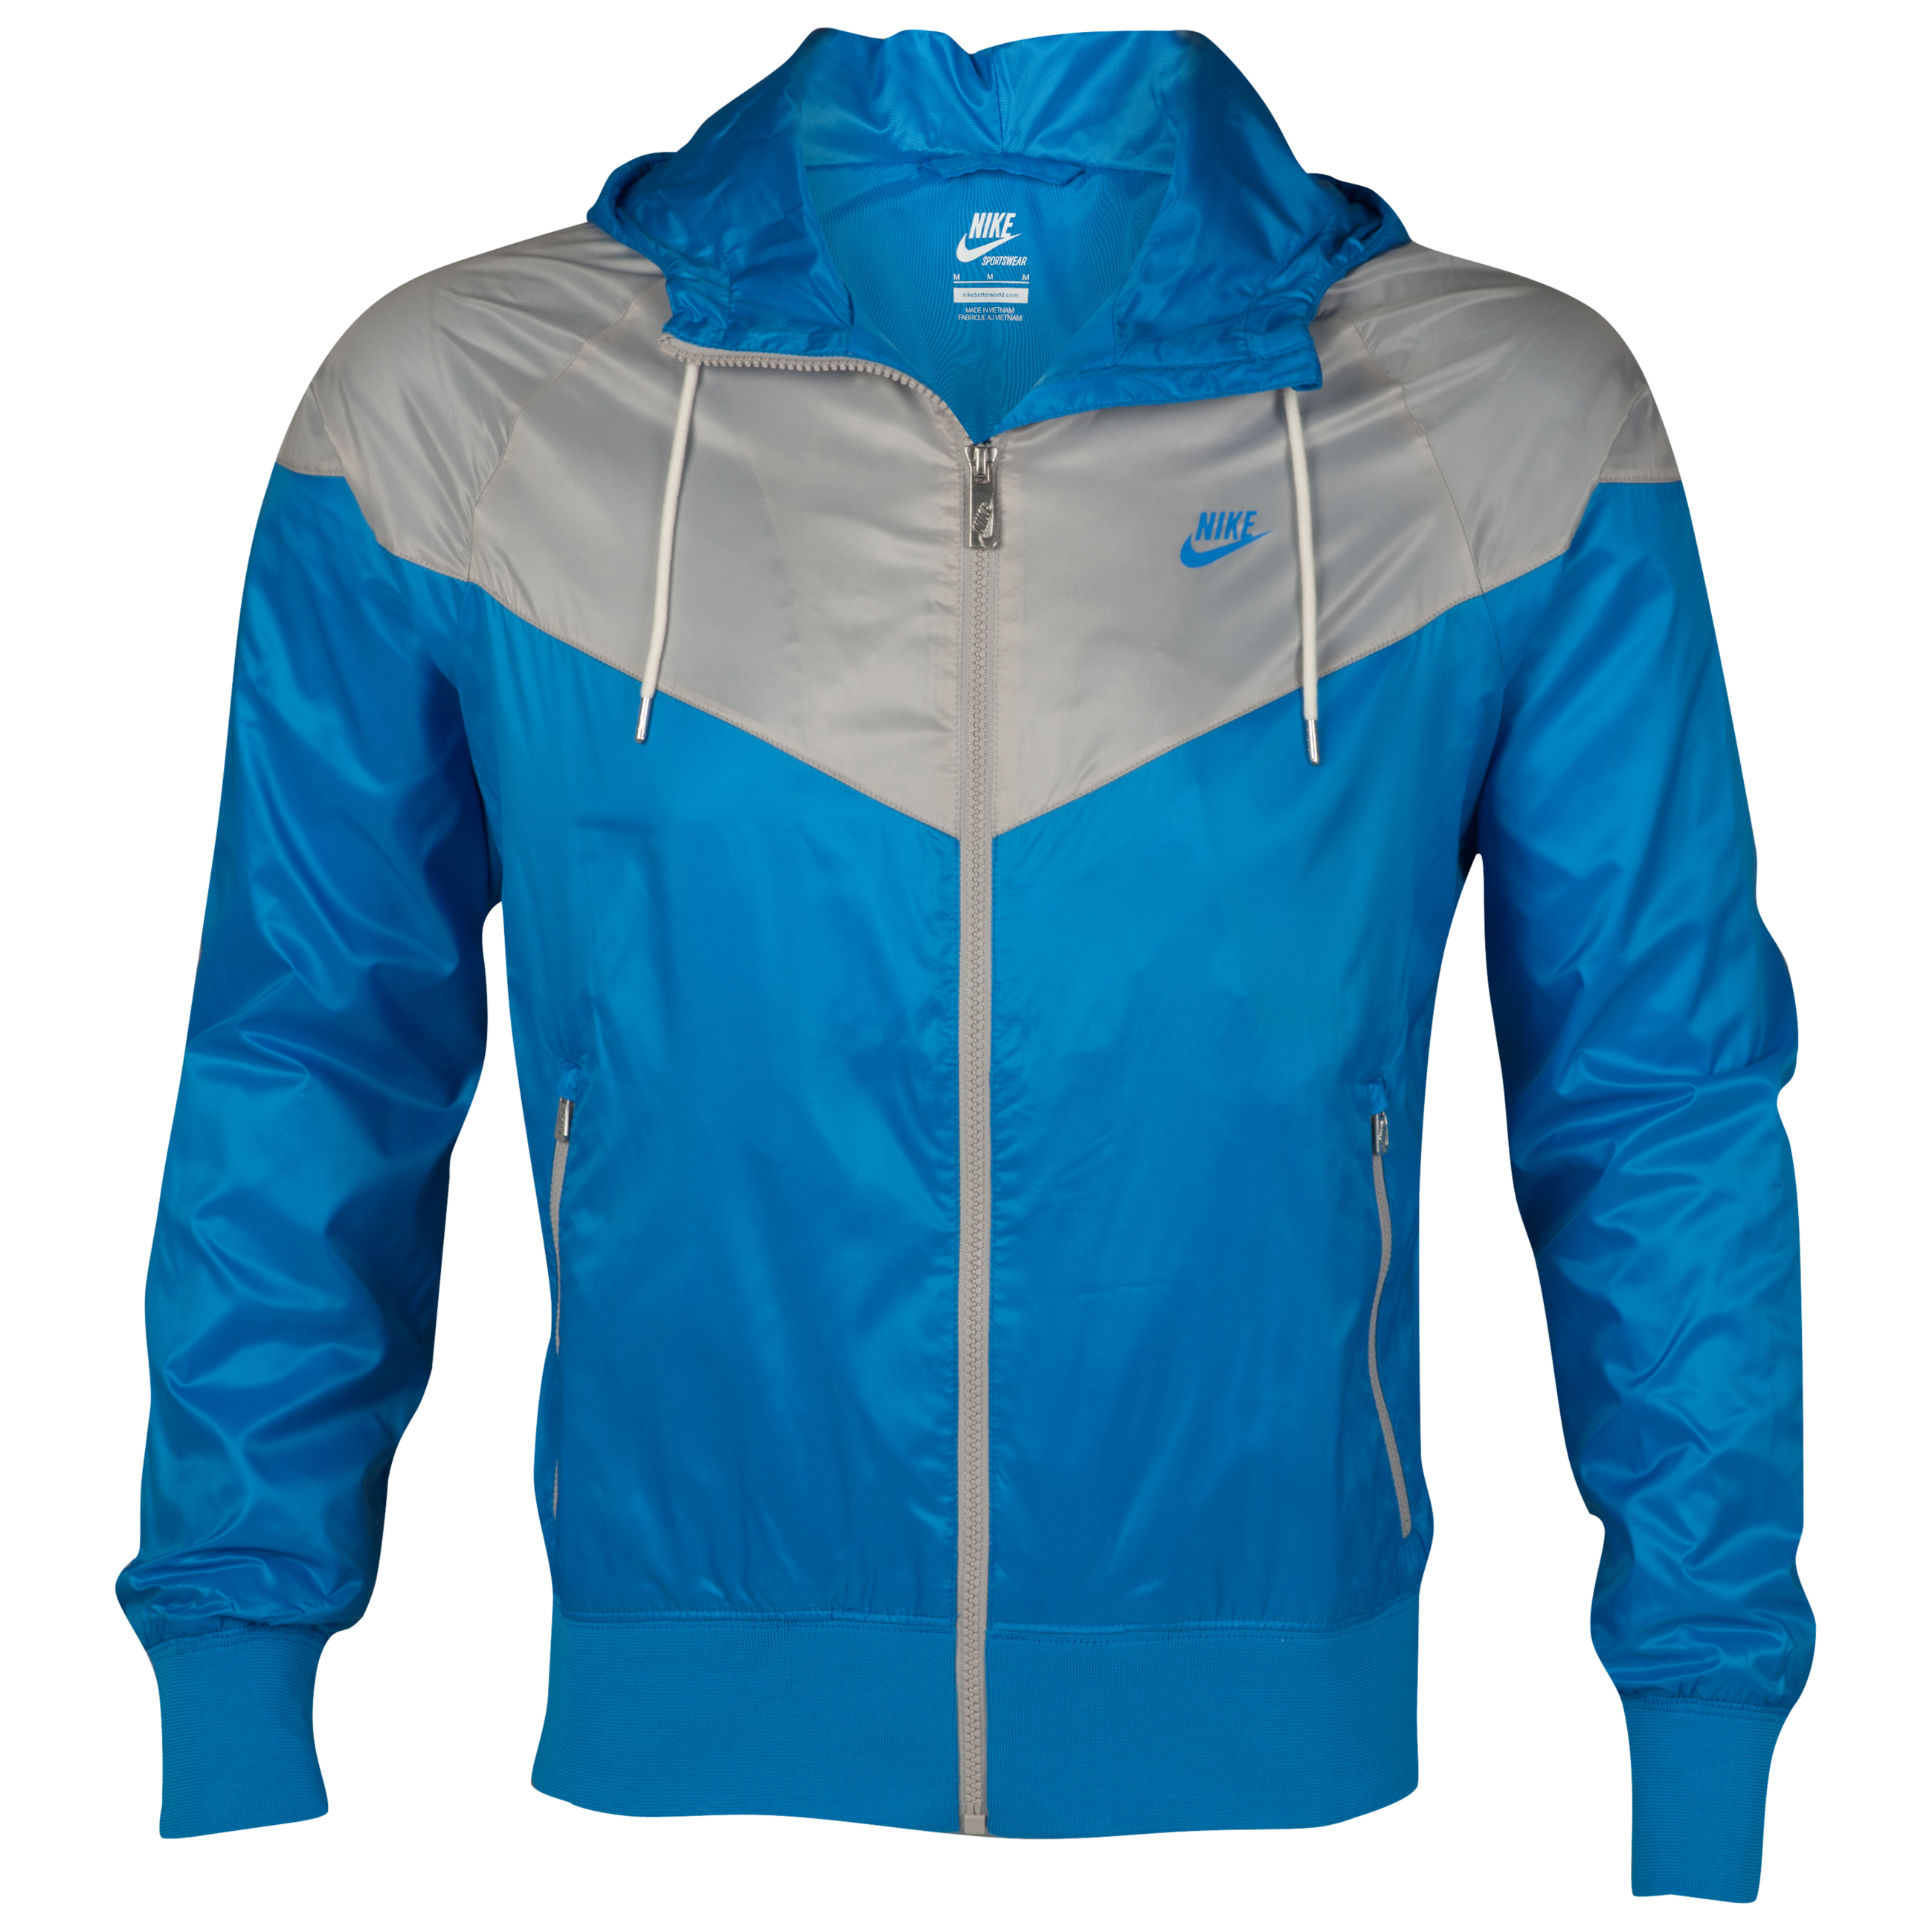 Nike Windrunner Jacket - Blue/Granite